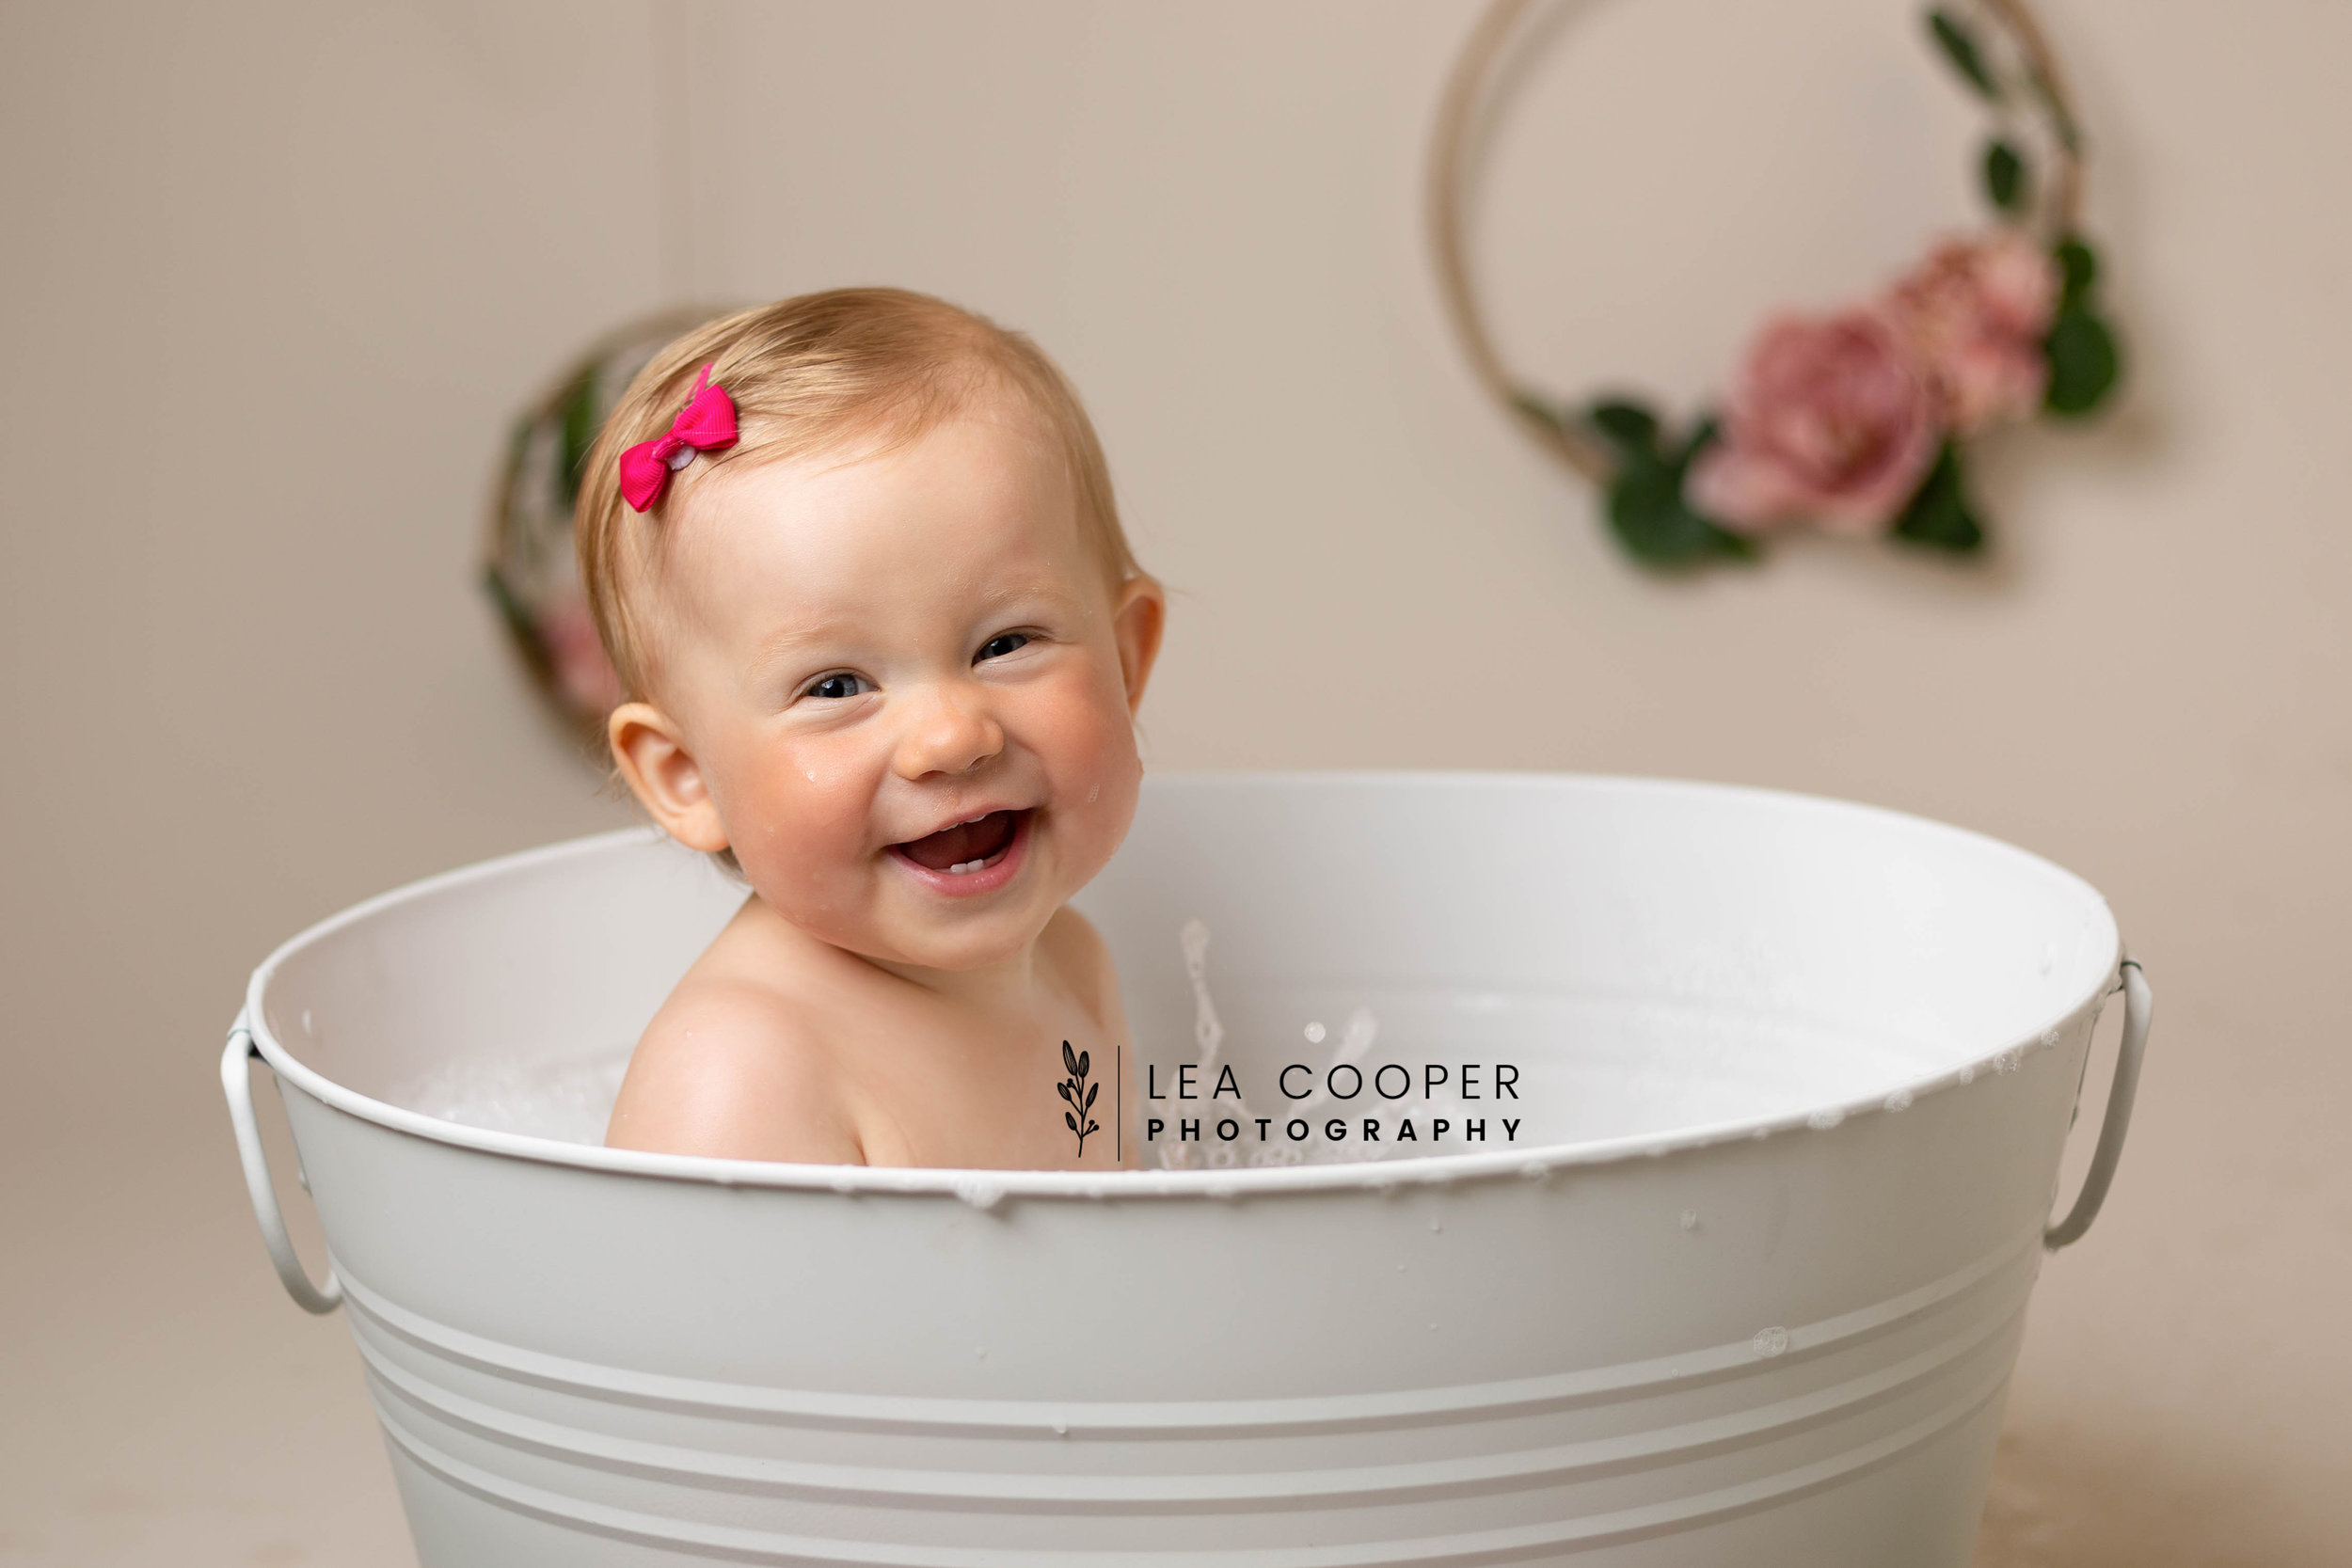 LEA-COOPER-PHOTOGRAPHY-CAKE-SMASH-PHOTOS-BIRTHDAY-PICTURES-WILLENHALL-WEST-MIDLANDS-SPLASH-CHILD-PHOTOGRAPHY-PORTRAIT-WEST-MIDLANDS-WOLVERHAMPTON-11.jpg